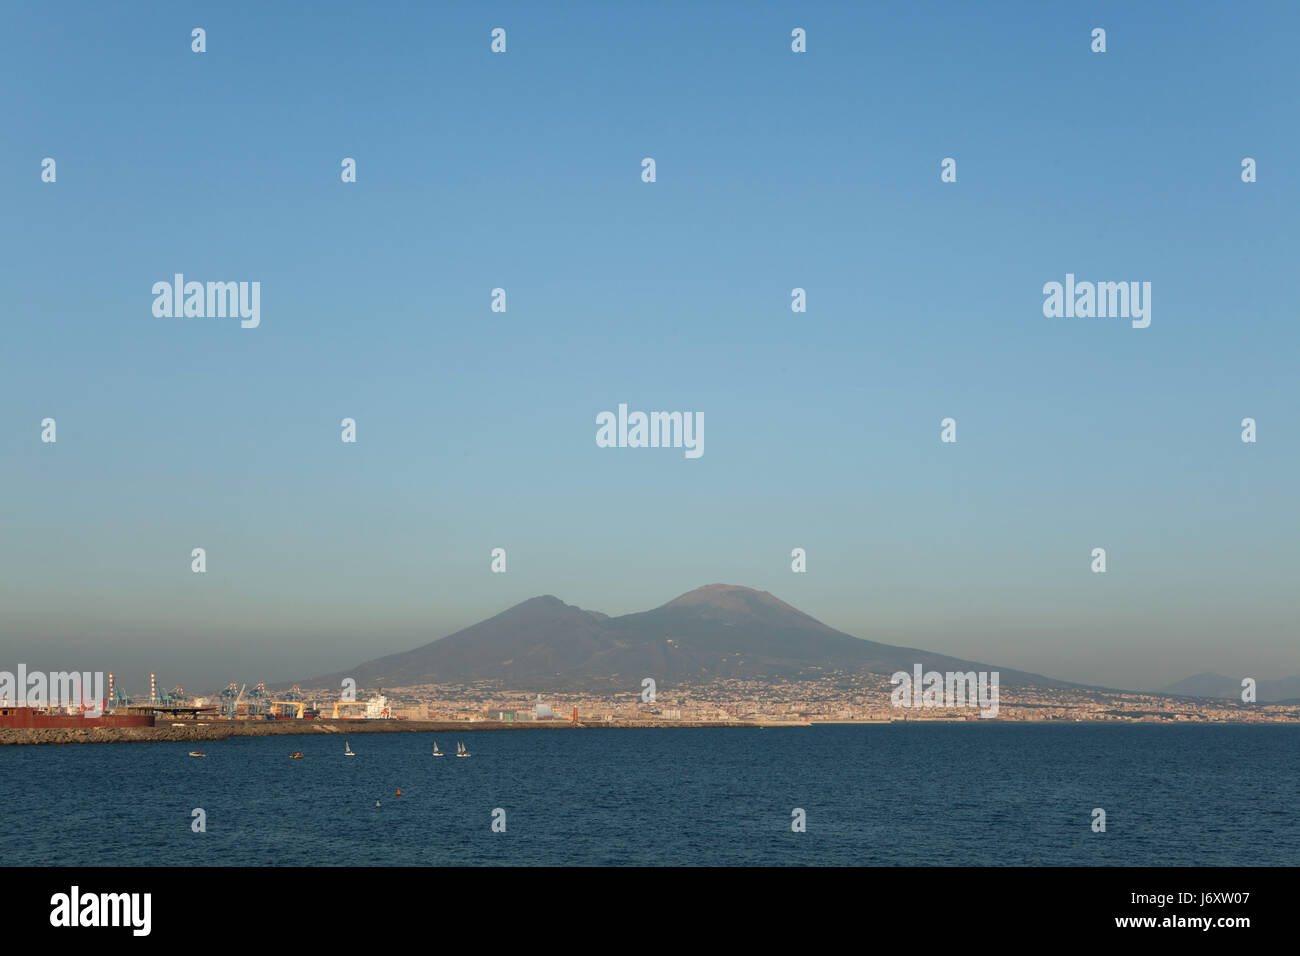 Mount Vesuvius and the Gulf of Naples pictured from Naples, Campania, Italy. - Stock Image